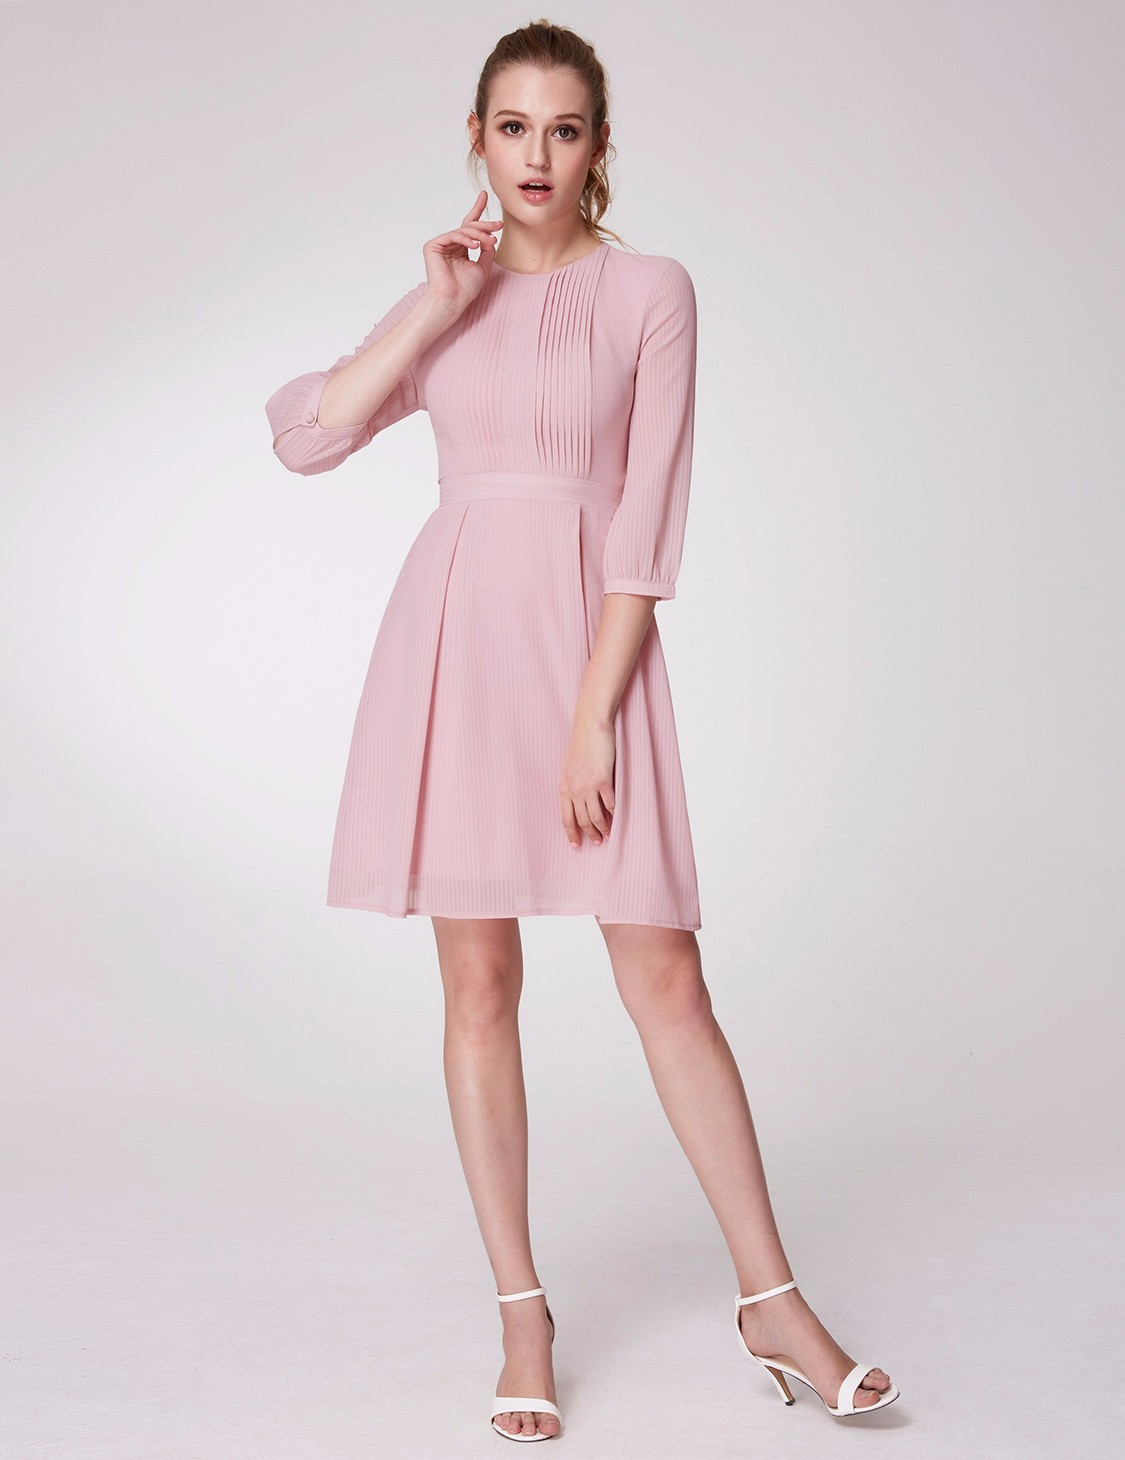 Alisa Pan Short Mini Sleeve Pink Ball Gown Casual Dresses Pageant a ...